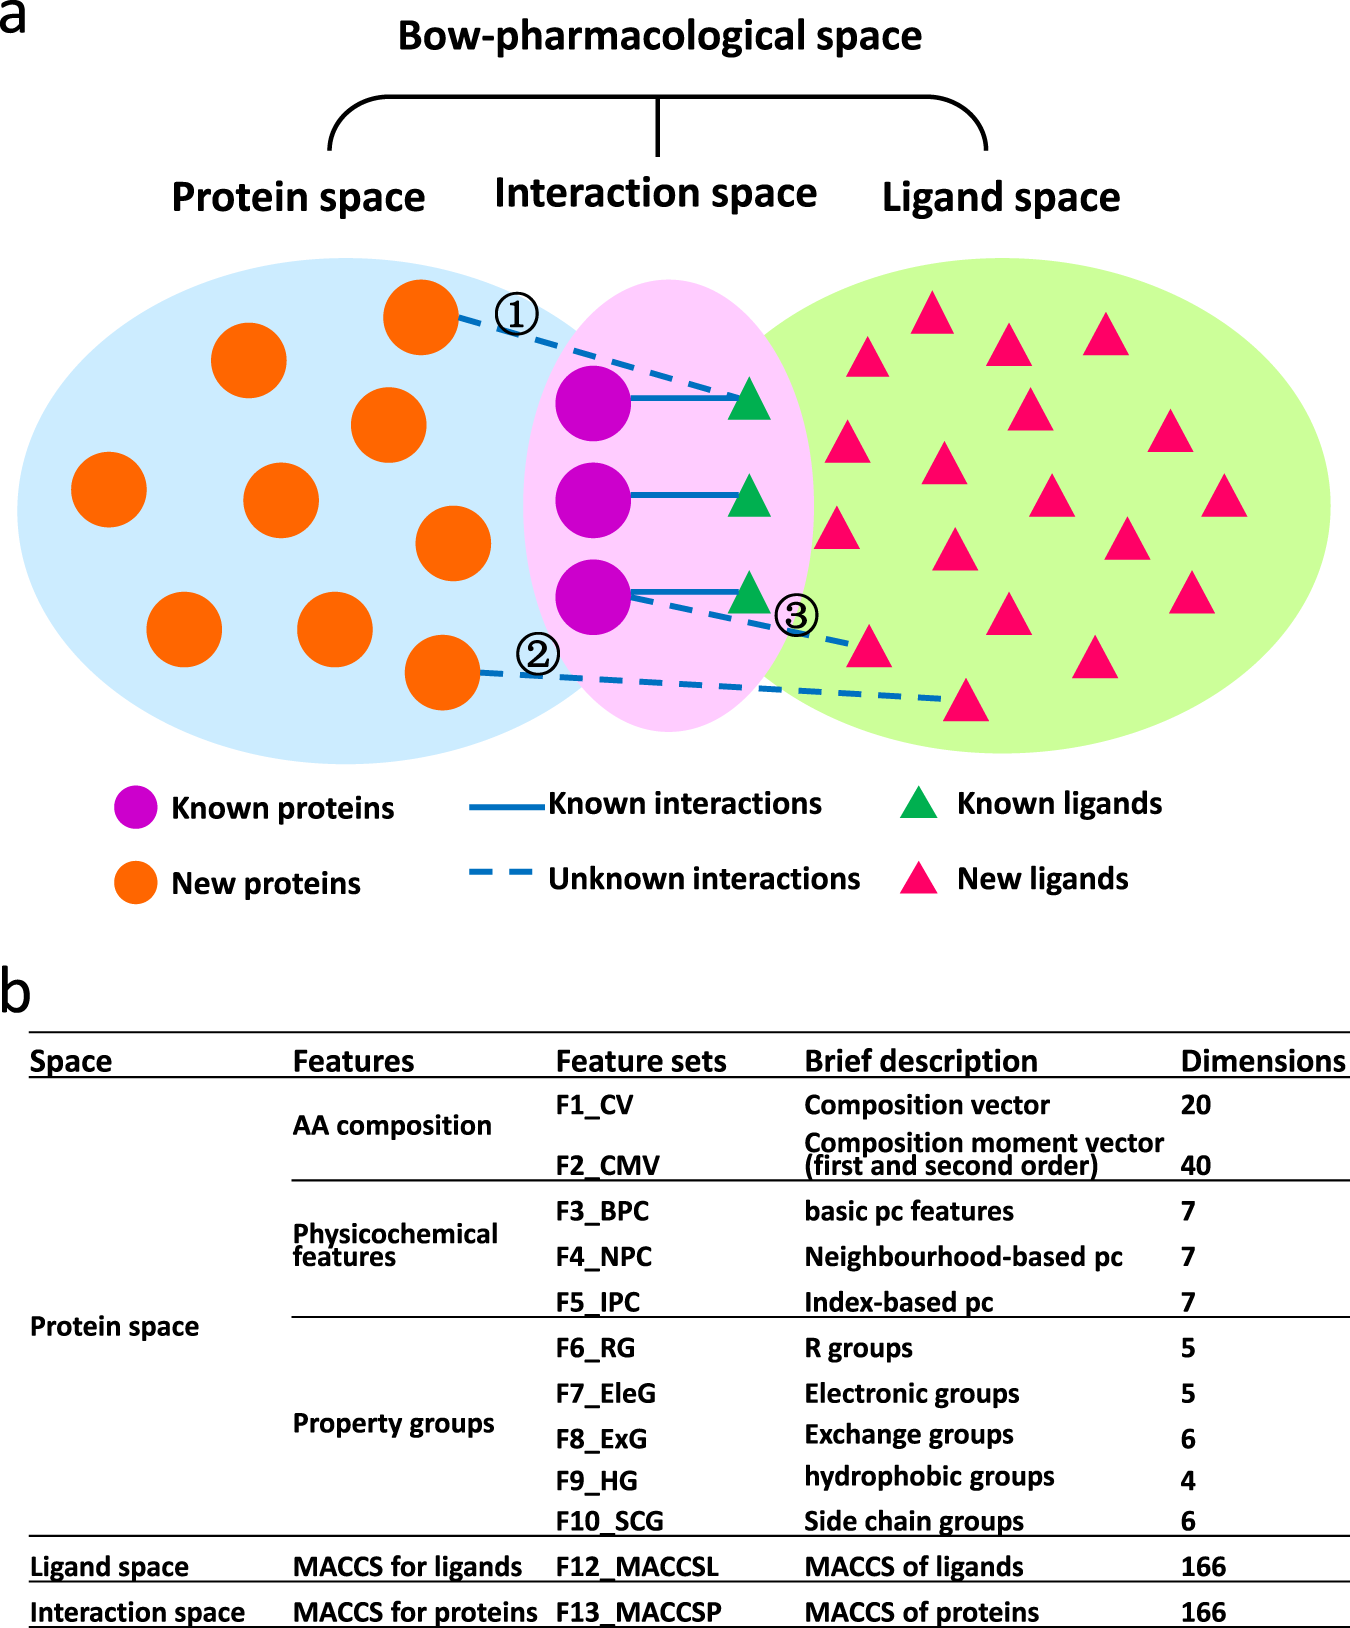 Predicting protein-ligand interactions based on bow